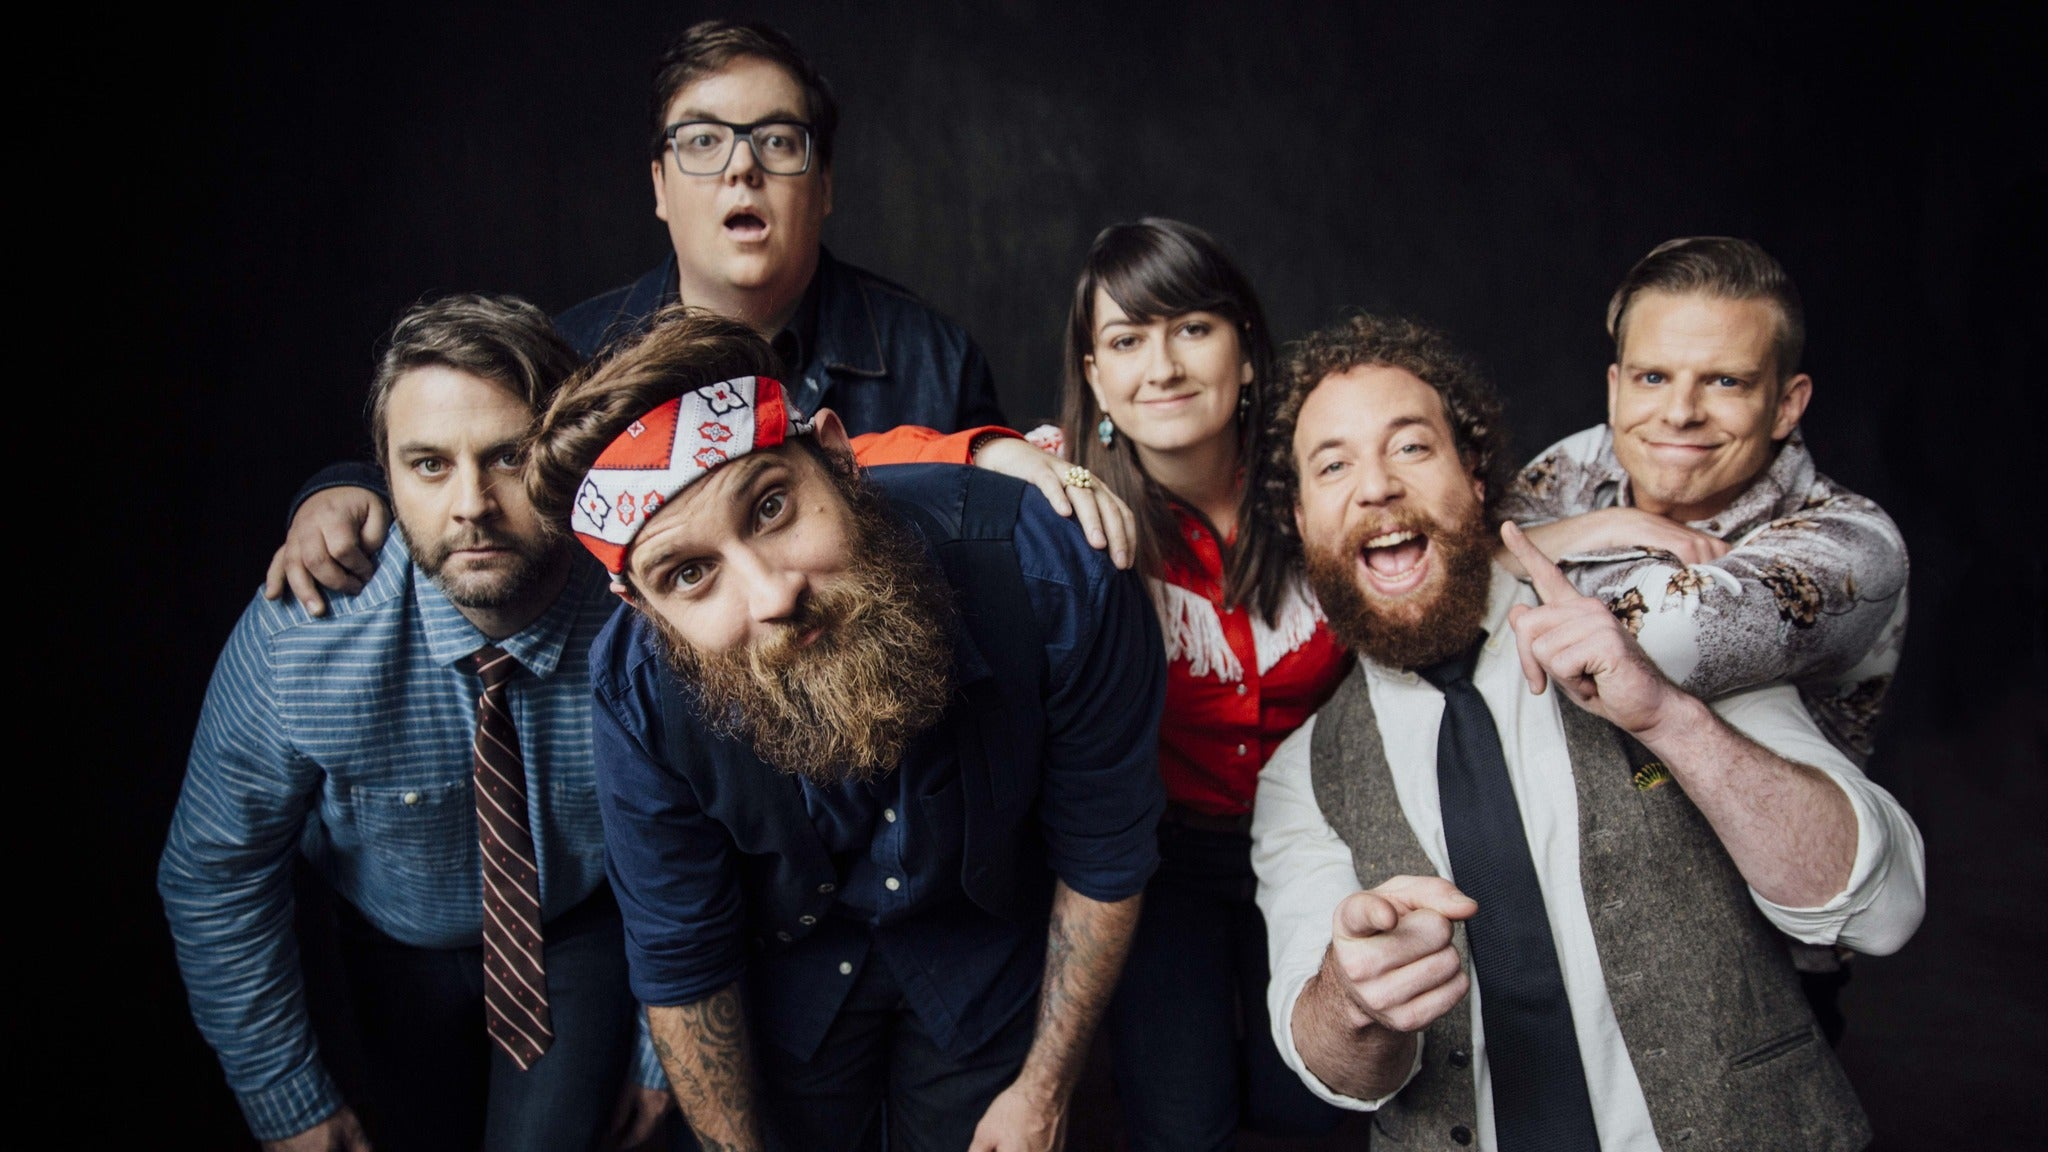 The Strumbellas - Rattlesnake Us Tour 2019 with Special Guest the Moth